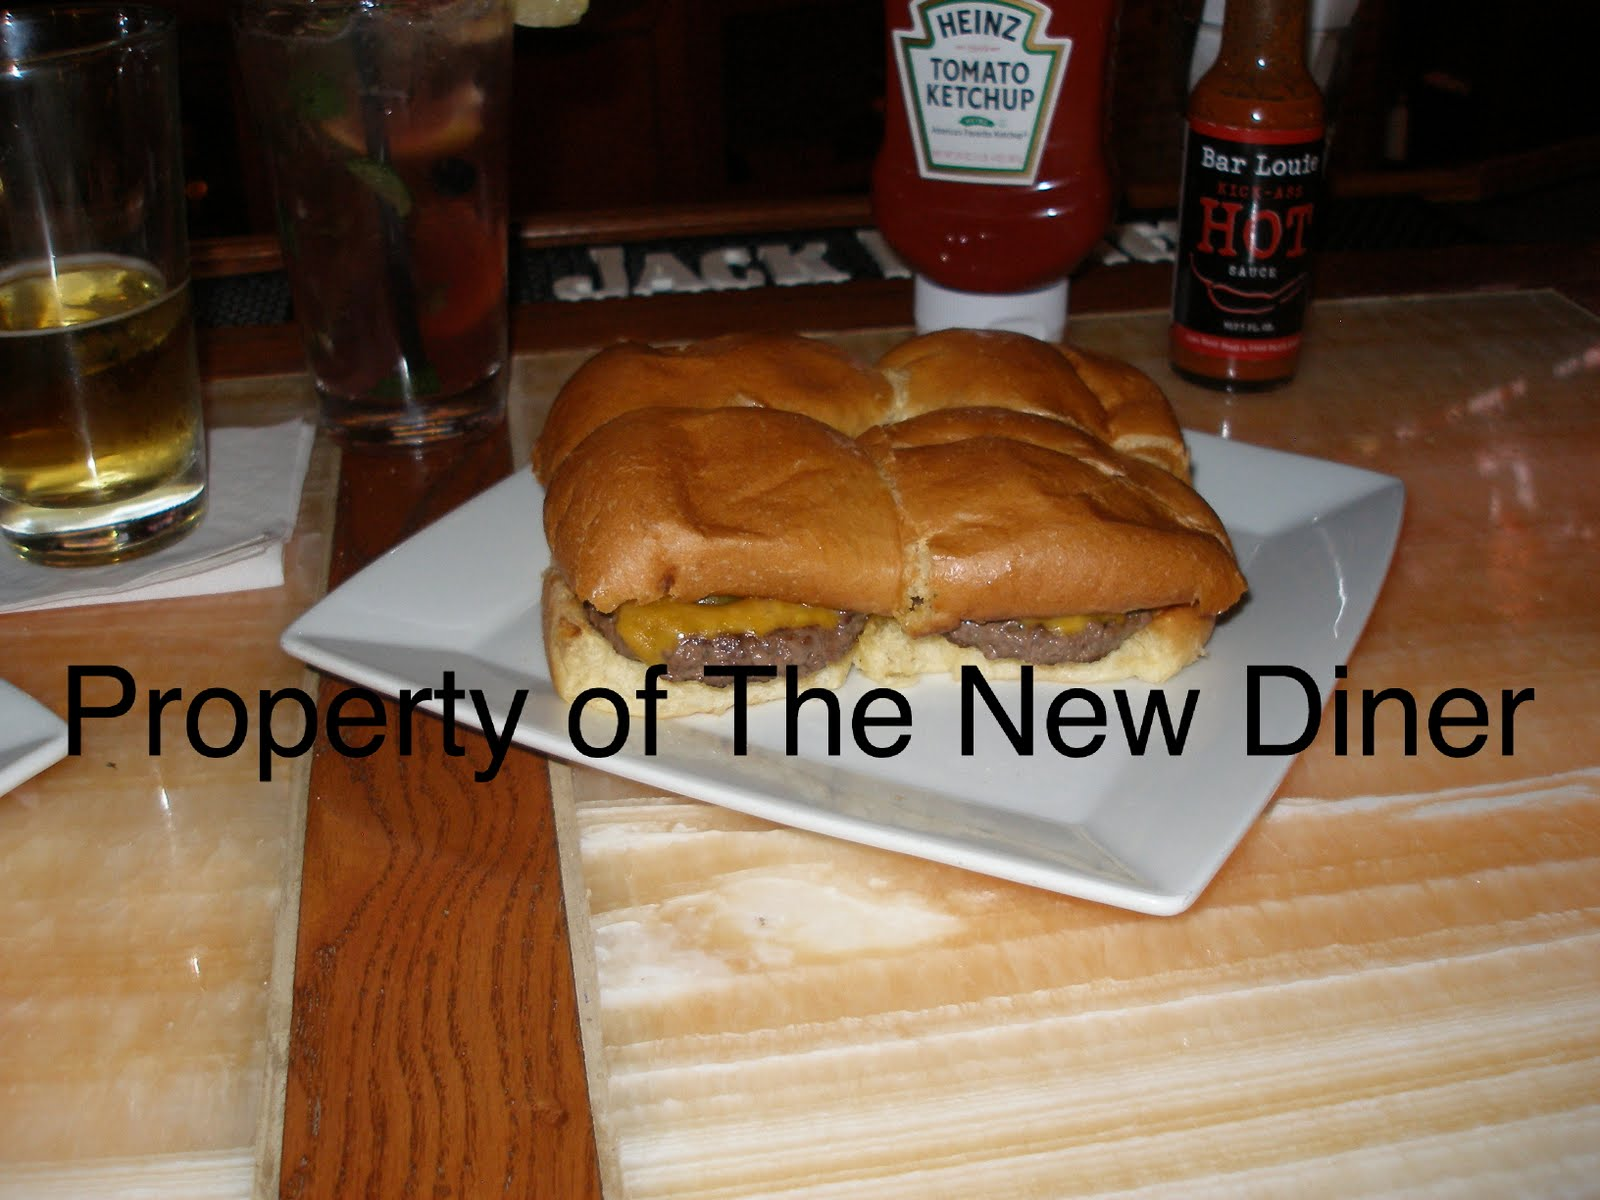 The New Diner: Bar Louie-Closed